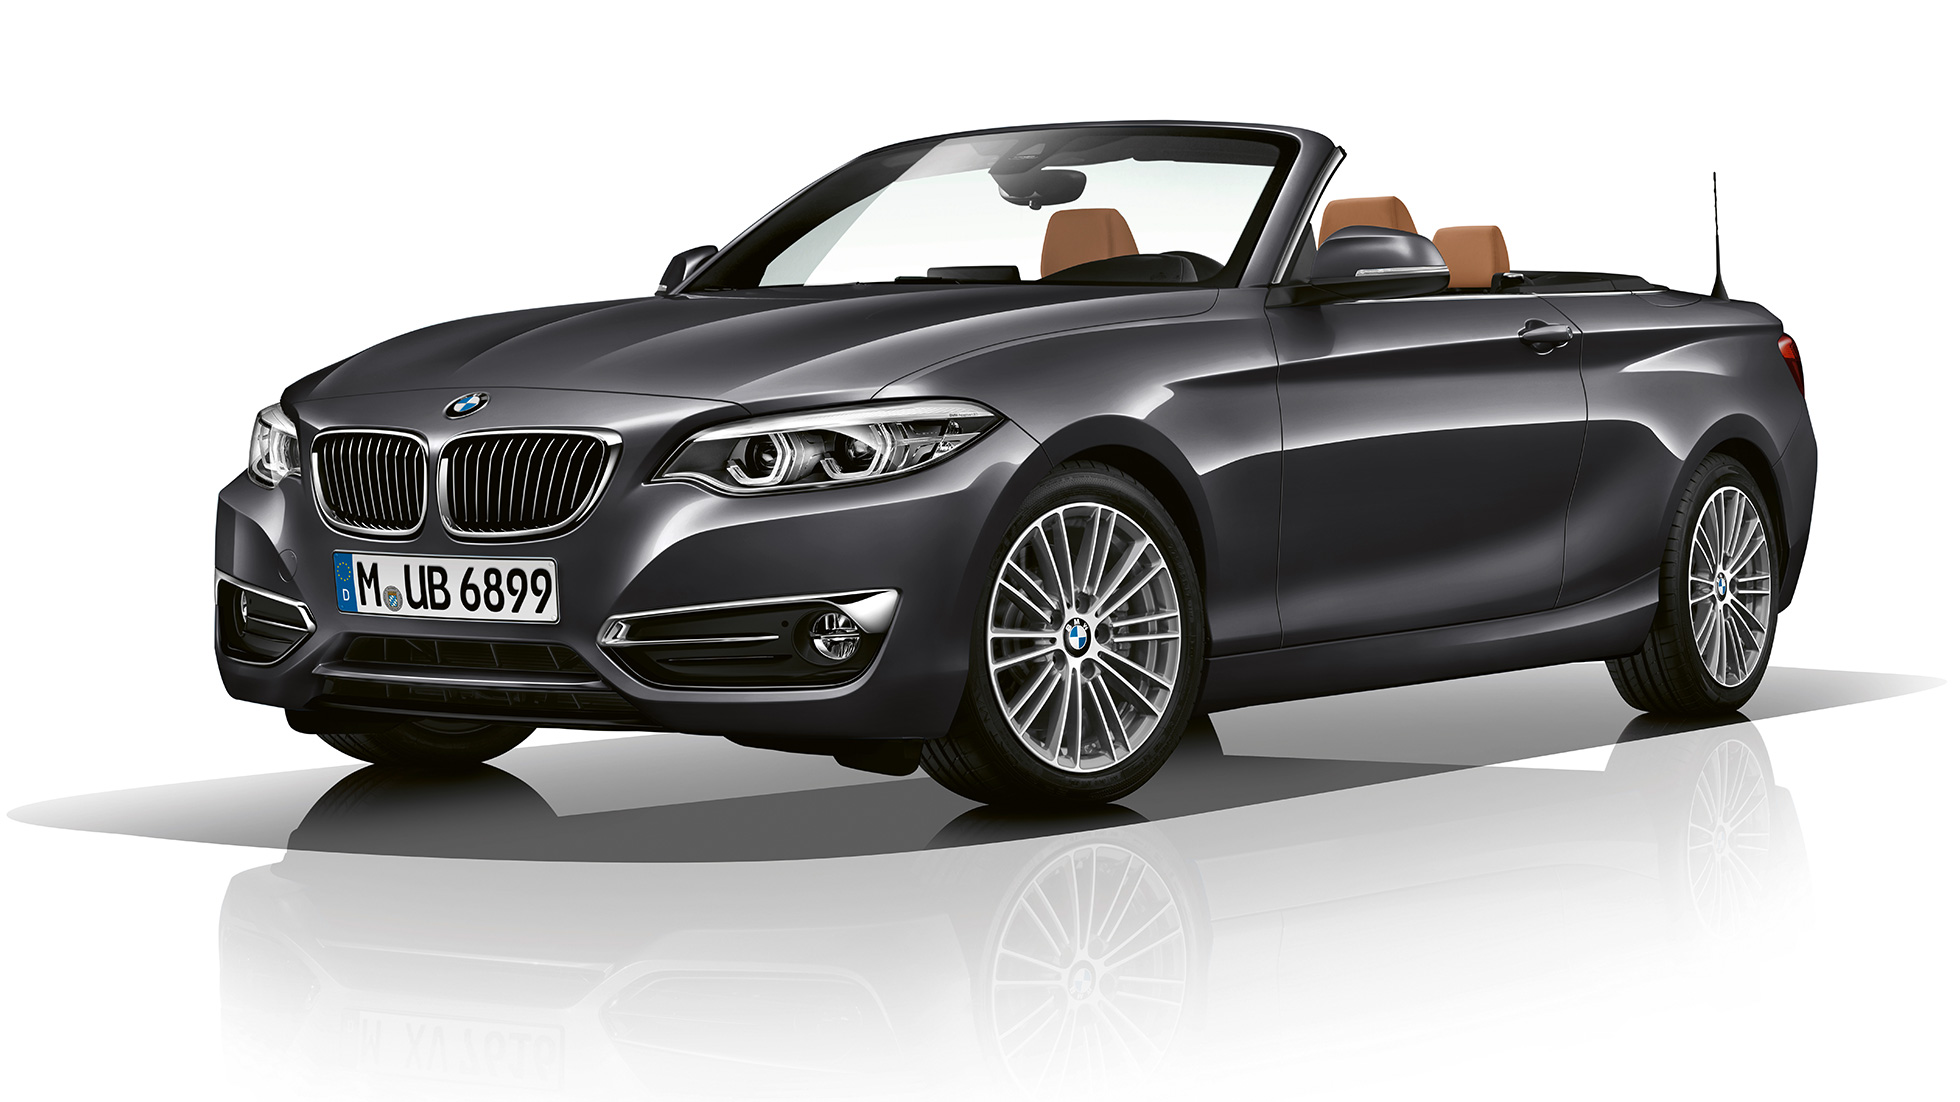 BMW 2-serie Cabriolet, Model Luxury Line, set forfra let drejet